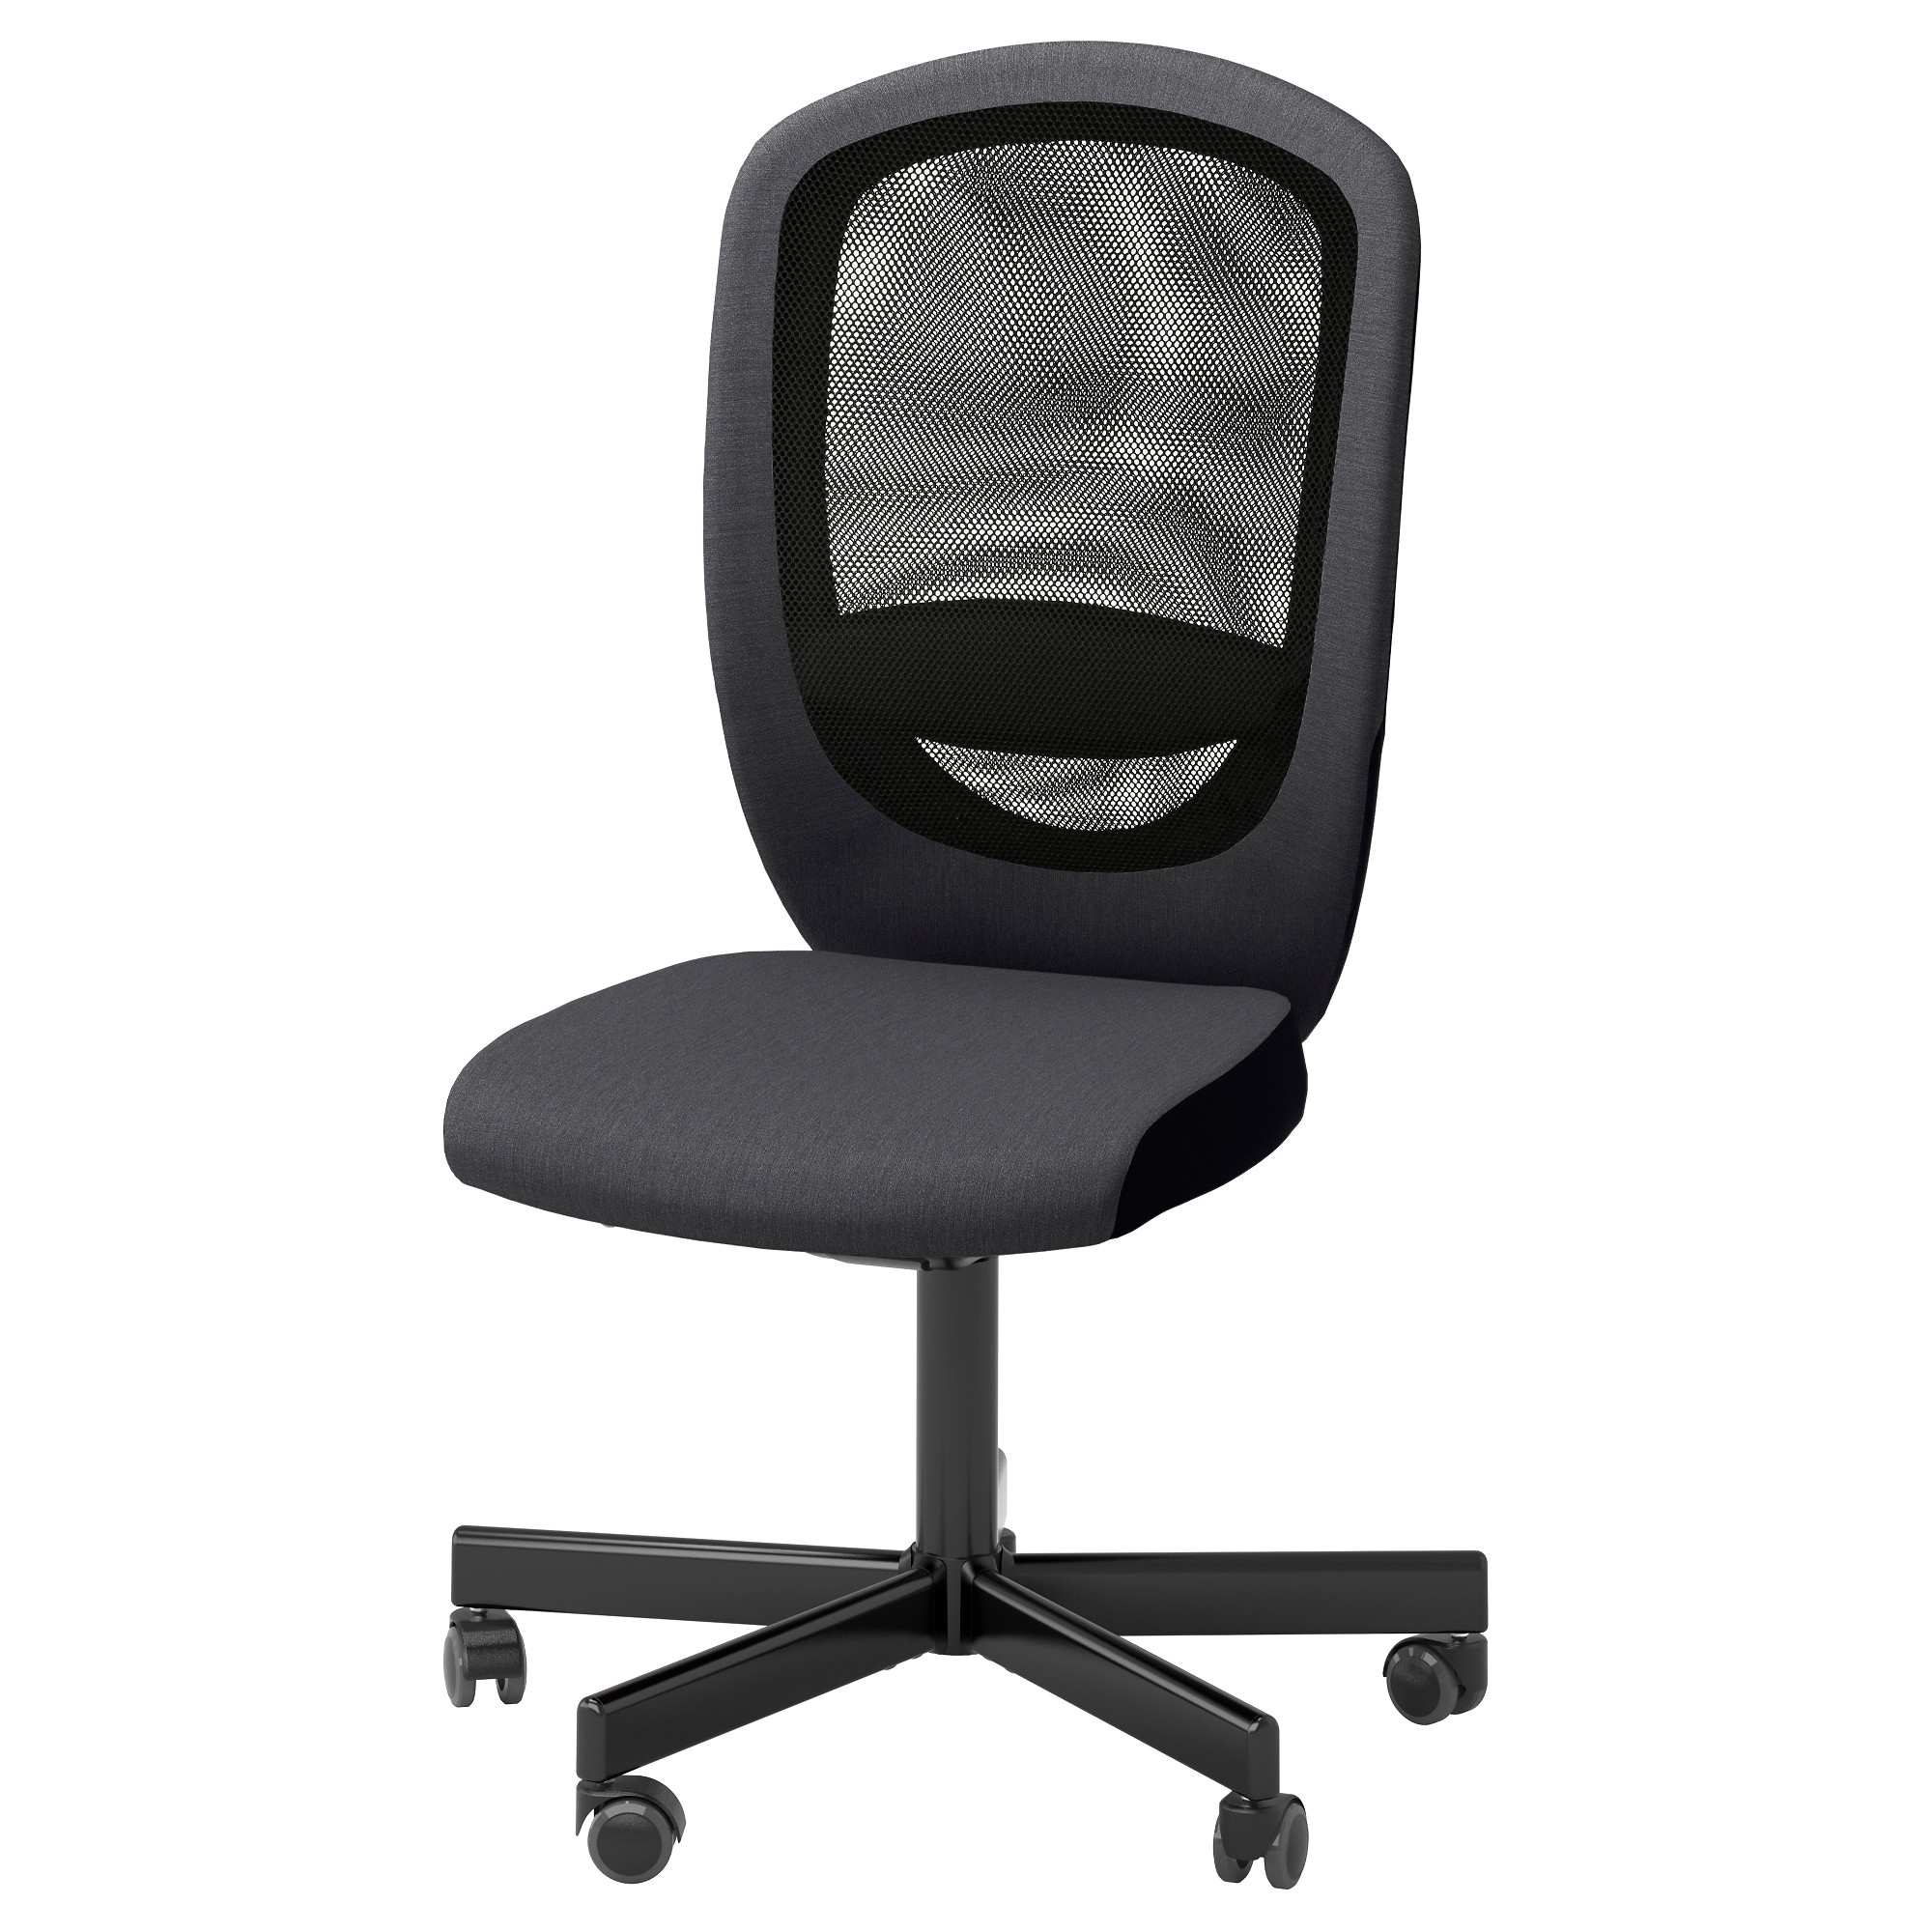 chair for office use desk chairs staples uk flintan swivel you can not compare more items